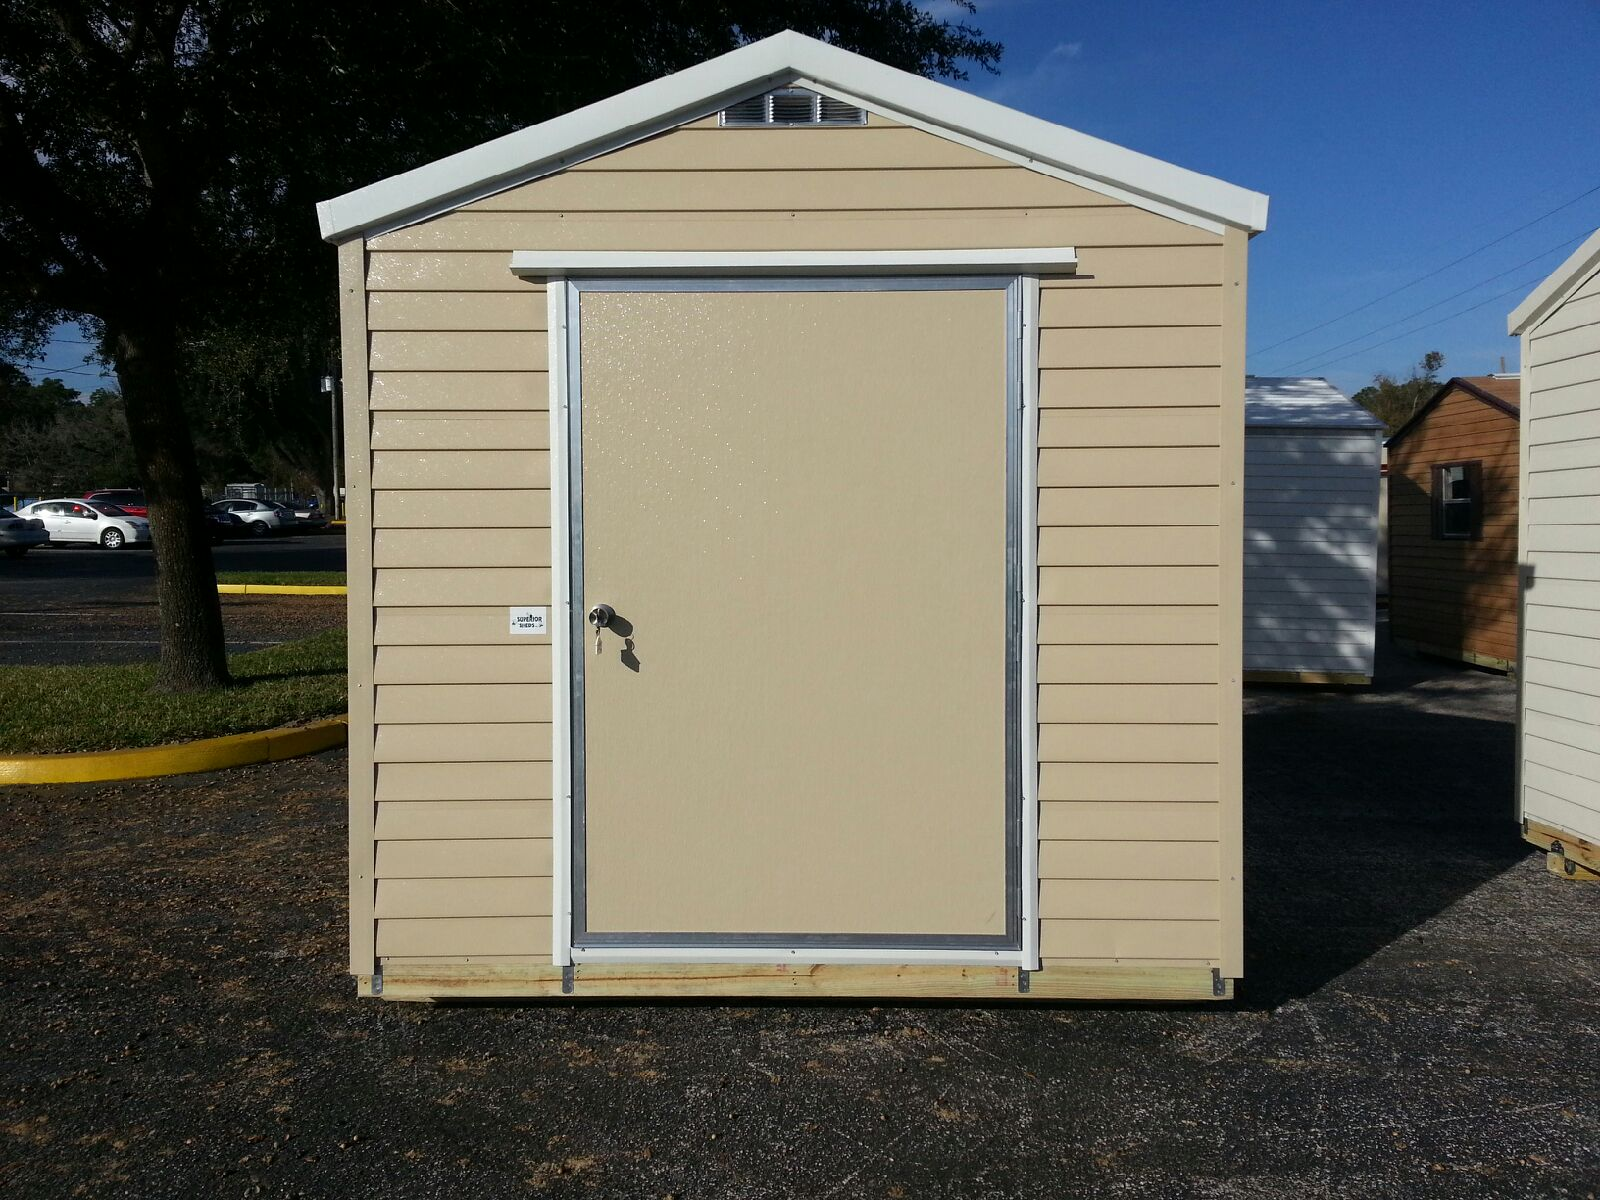 Bungalow sheds small sheds for sale garden sheds for Garden shed january sale